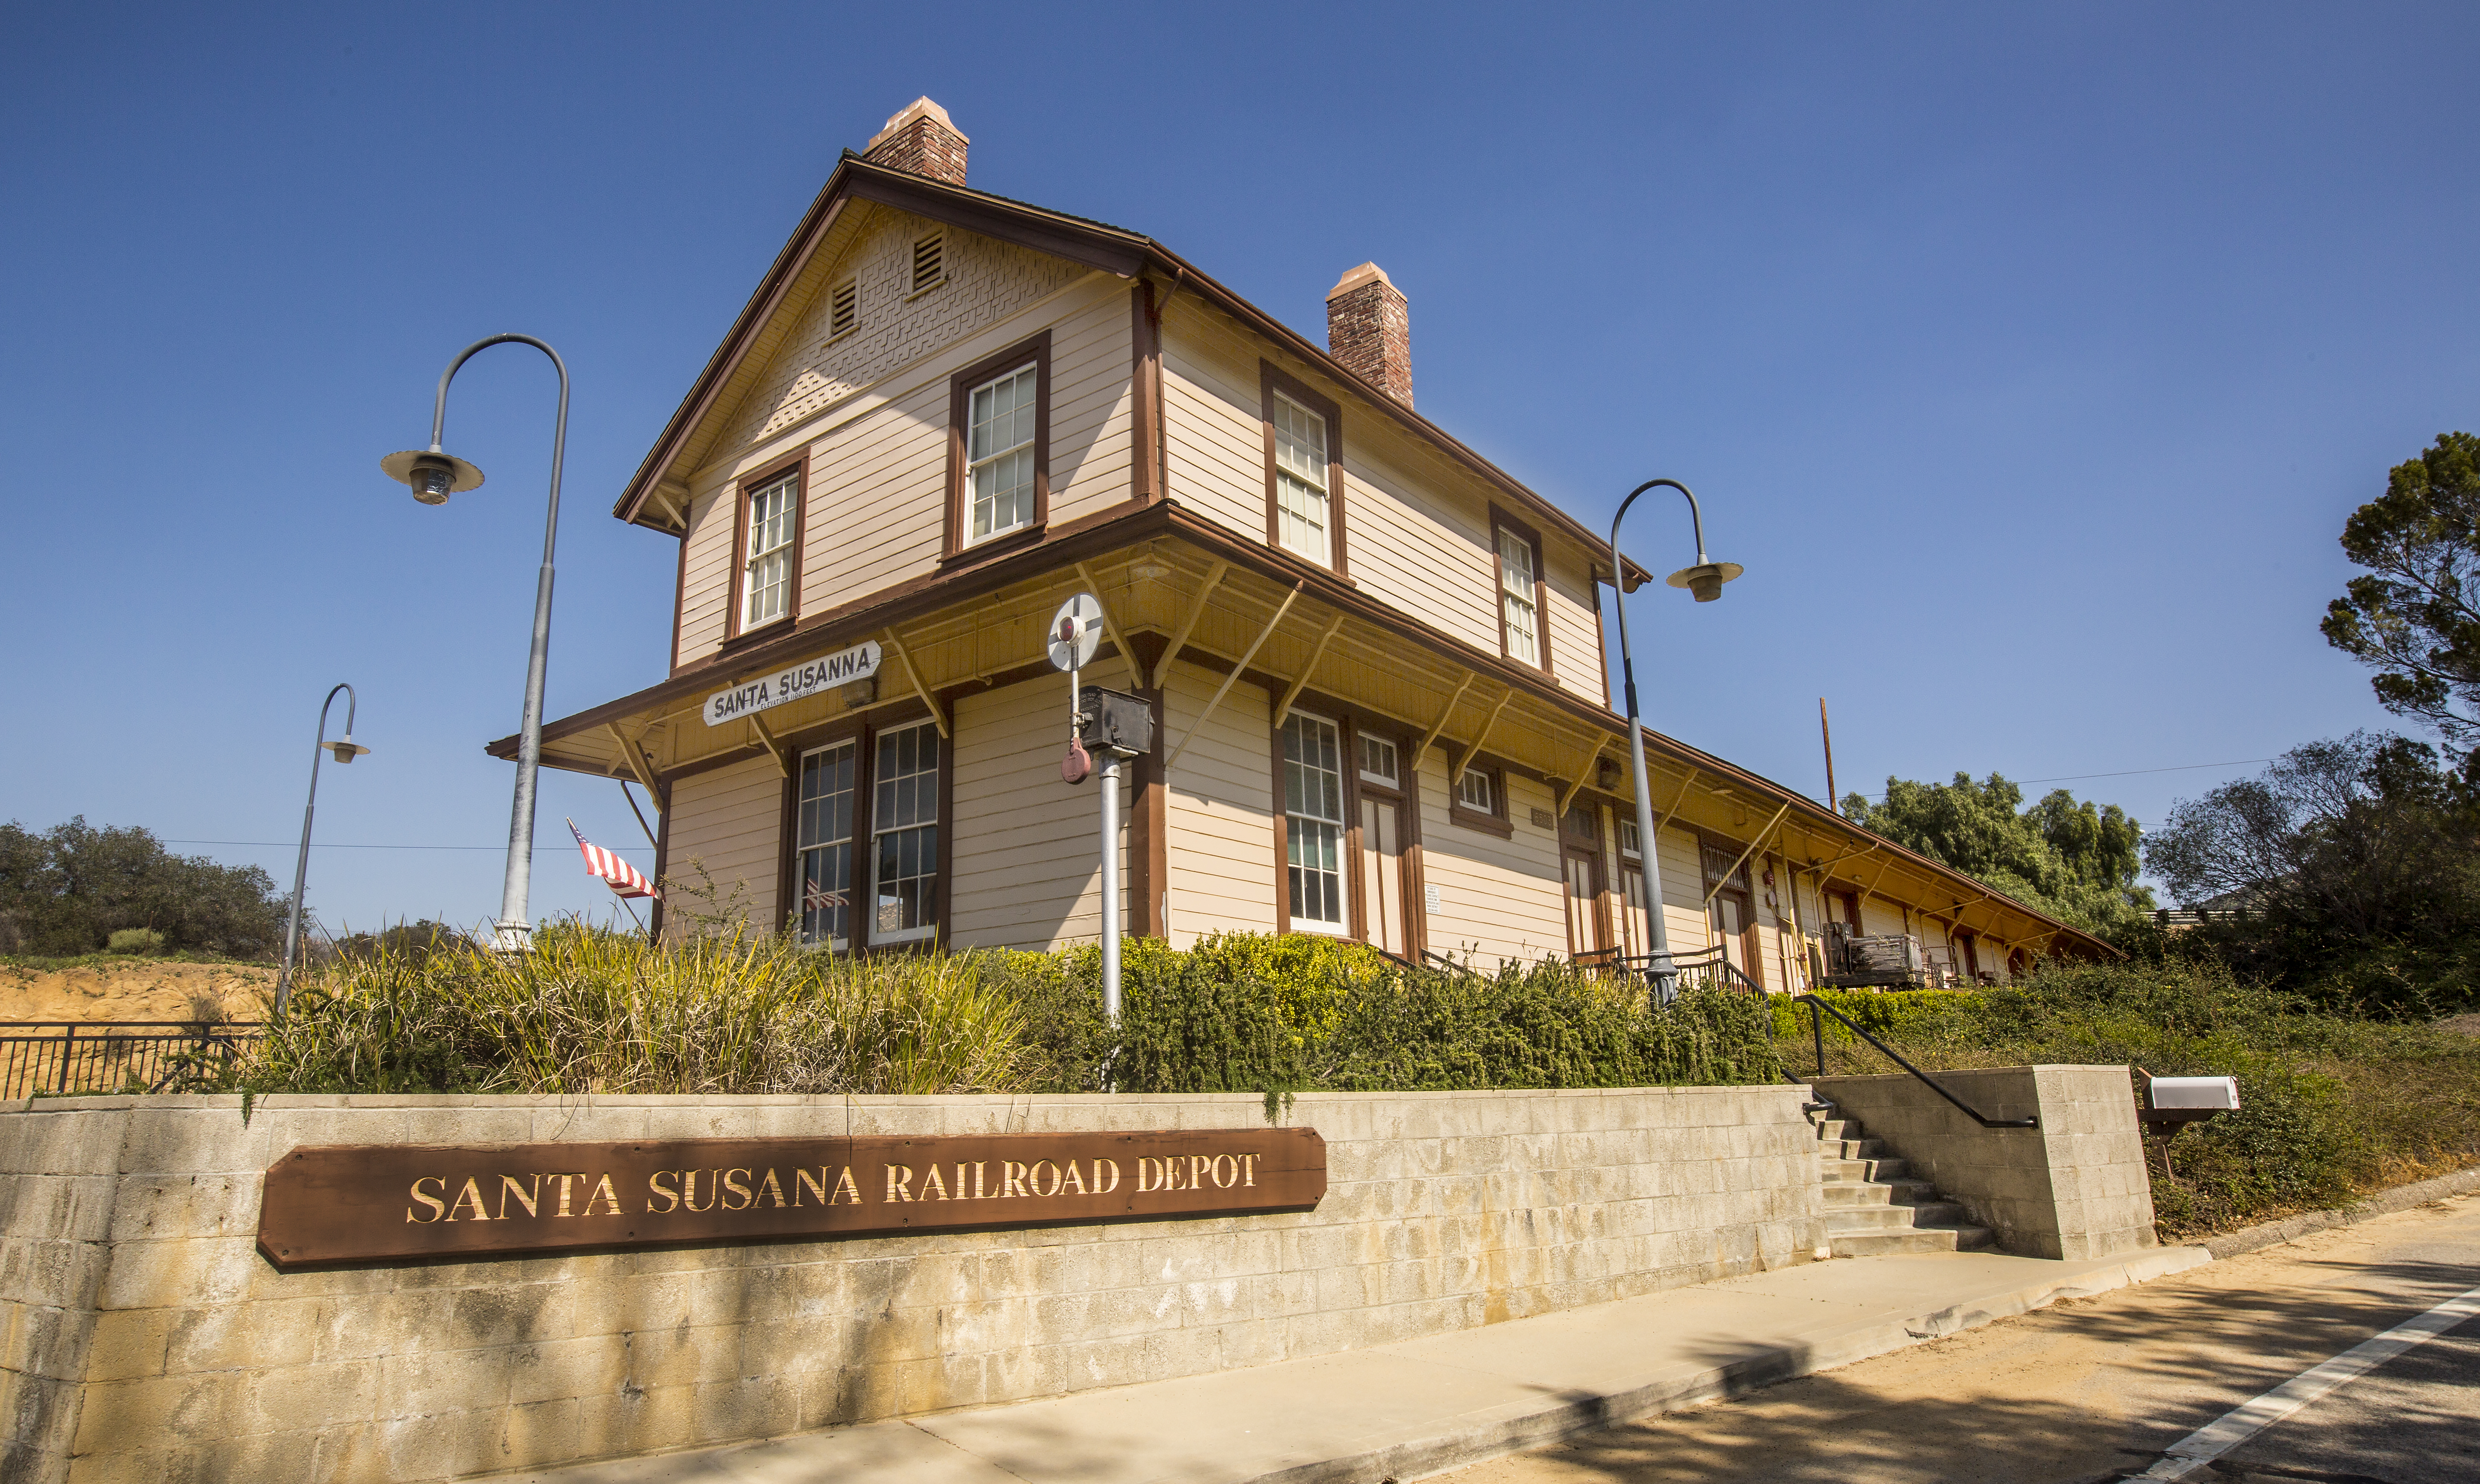 Summer fun visit simi valley blog today the original building is the current home of the rancho simi foundation and the santa susana pacific model railroad club when visitors step inside solutioingenieria Choice Image